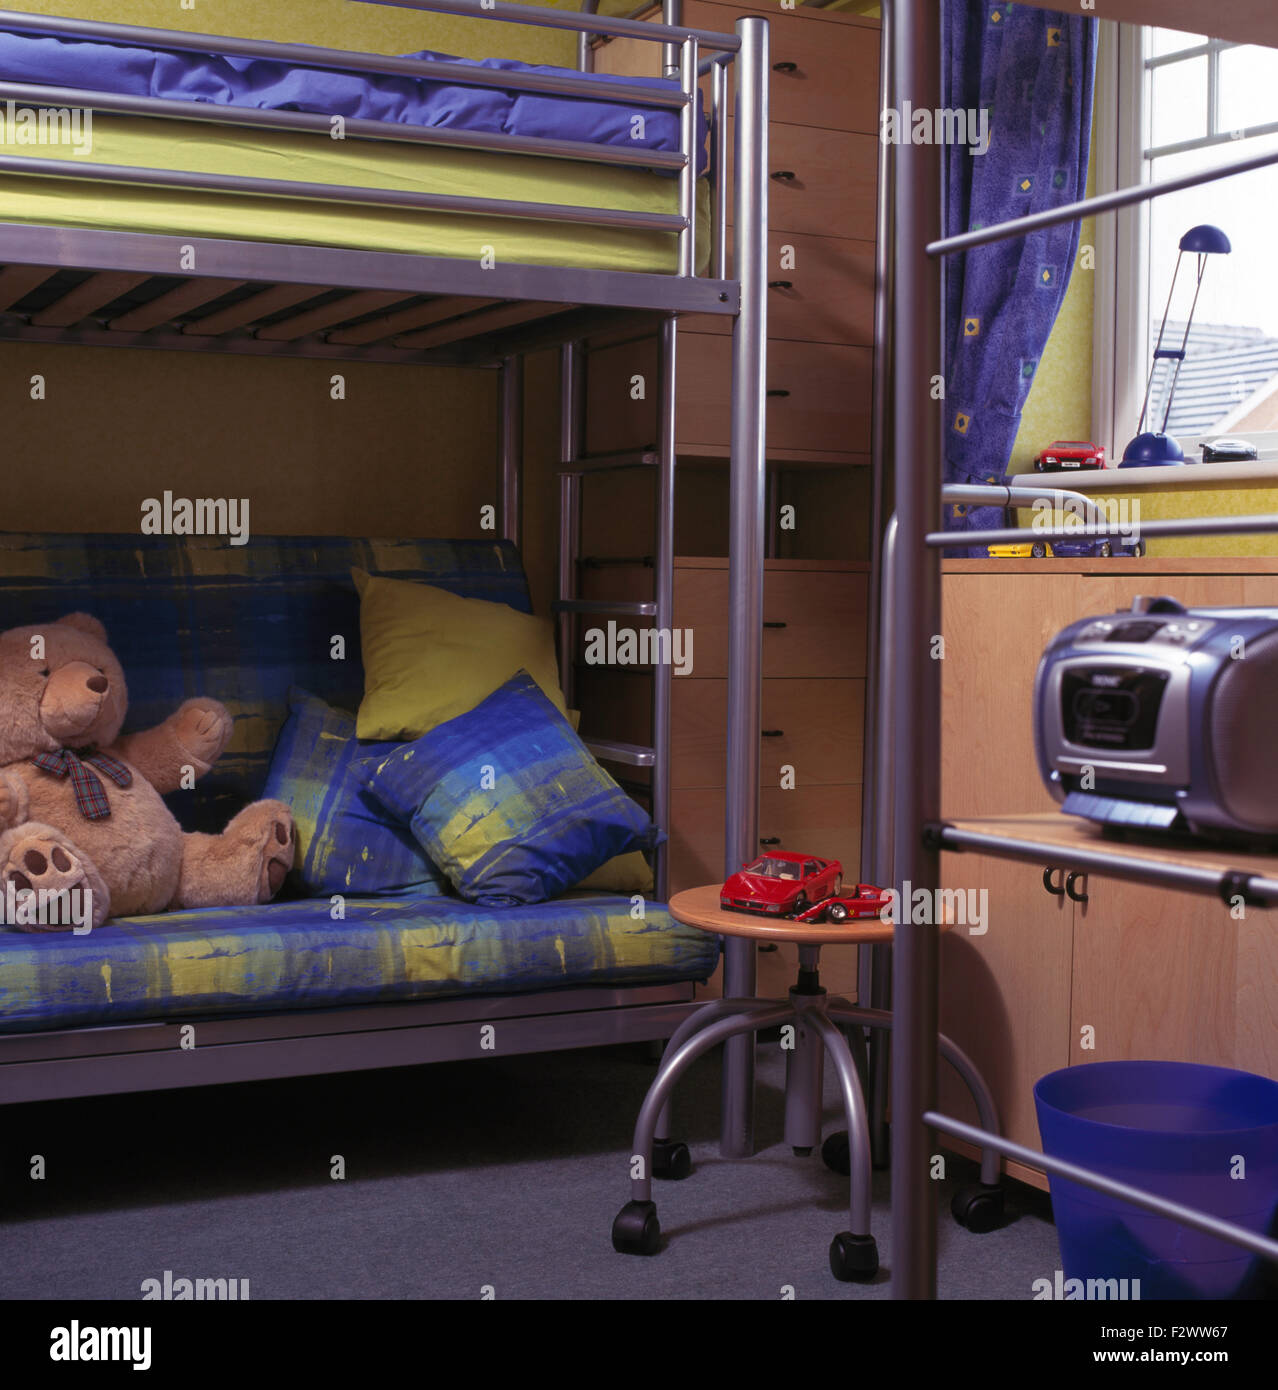 Picture of: Blue Green Cushions And Linen On Stainless Steel Bunk Beds In Stock Photo Alamy